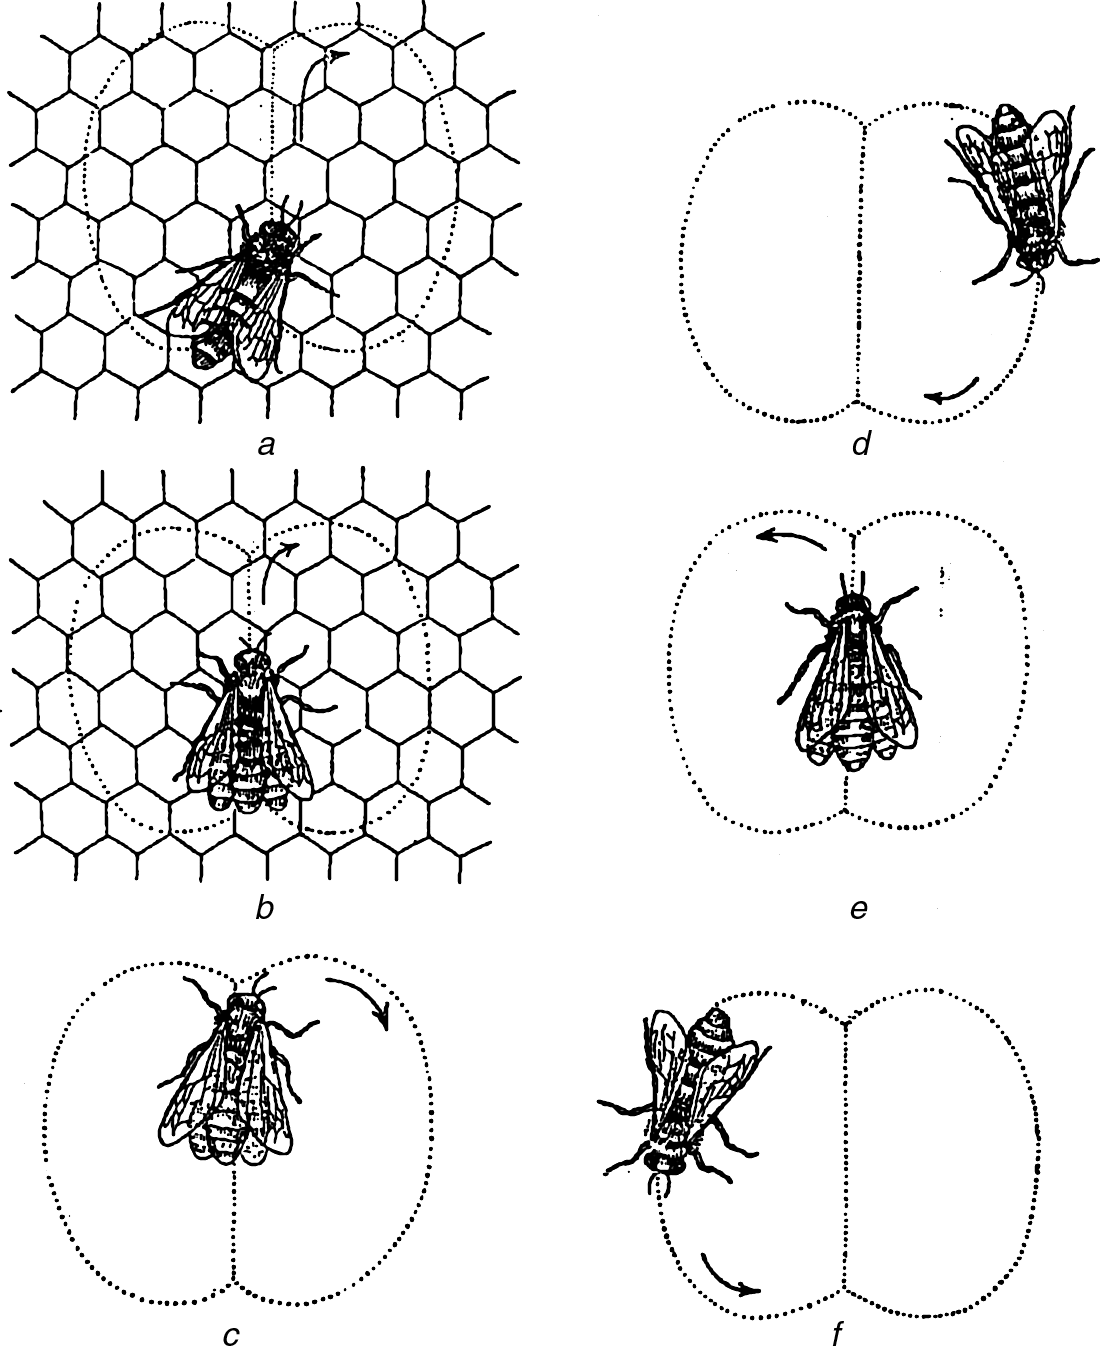 02-Saxton-3990-CH-02:Saxton-3990-CH-02 02/11/2009 3:44 PM Page 32 Figure 2.2 The wagging dance of the honey bee Source: von Frisch, K. (1954).